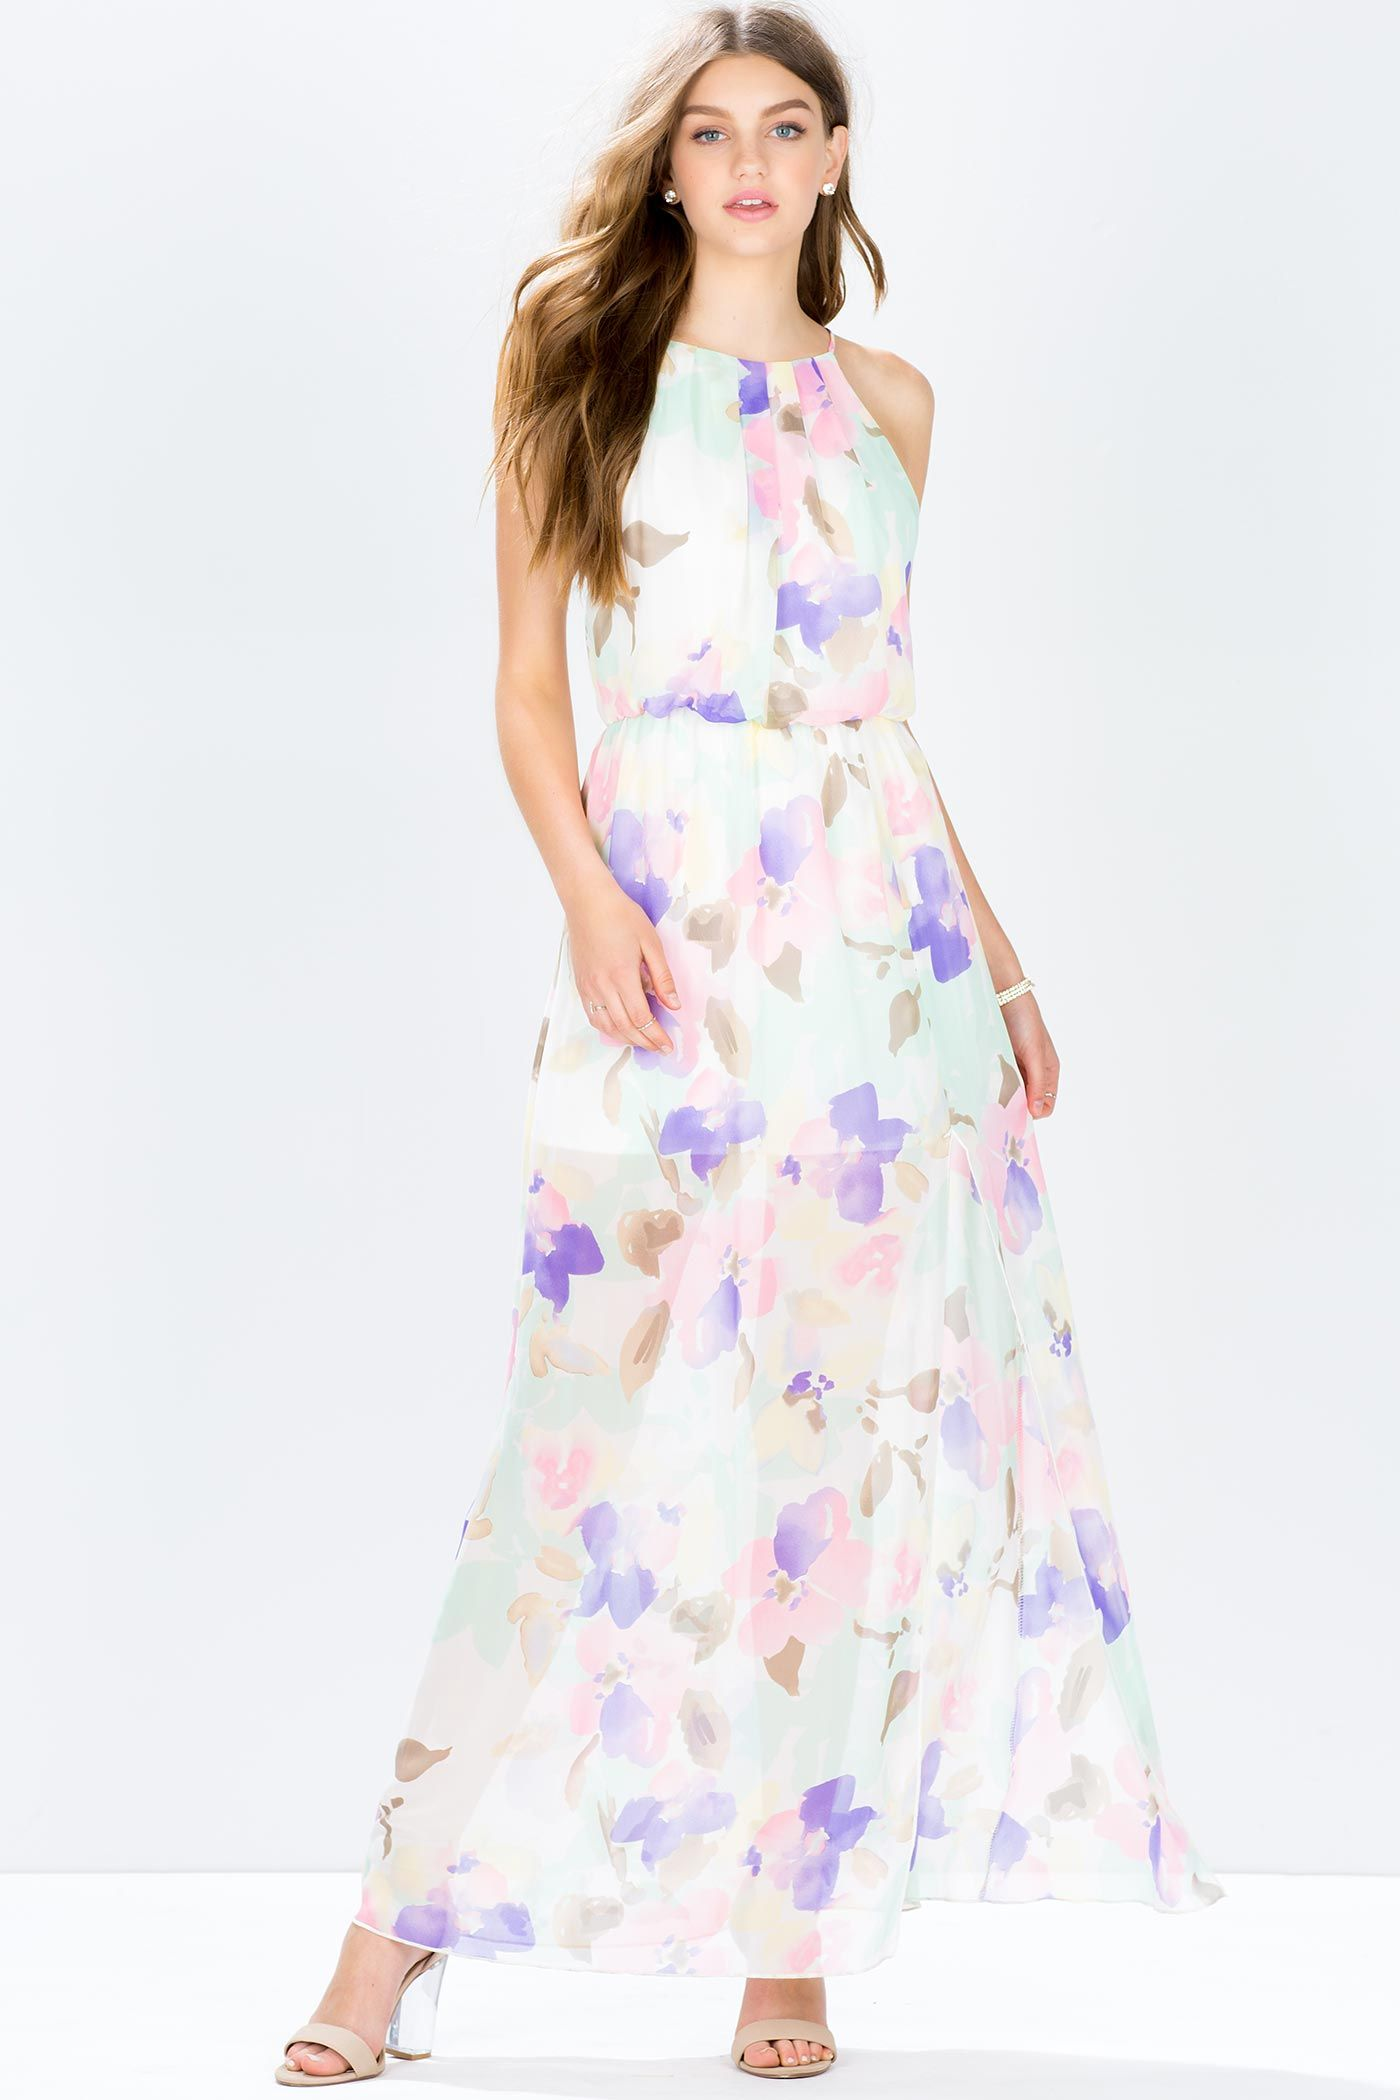 87b762e2a1 A gauzy and dreamy chiffon maxi dress, featuring a tender watercolor-style  floral print